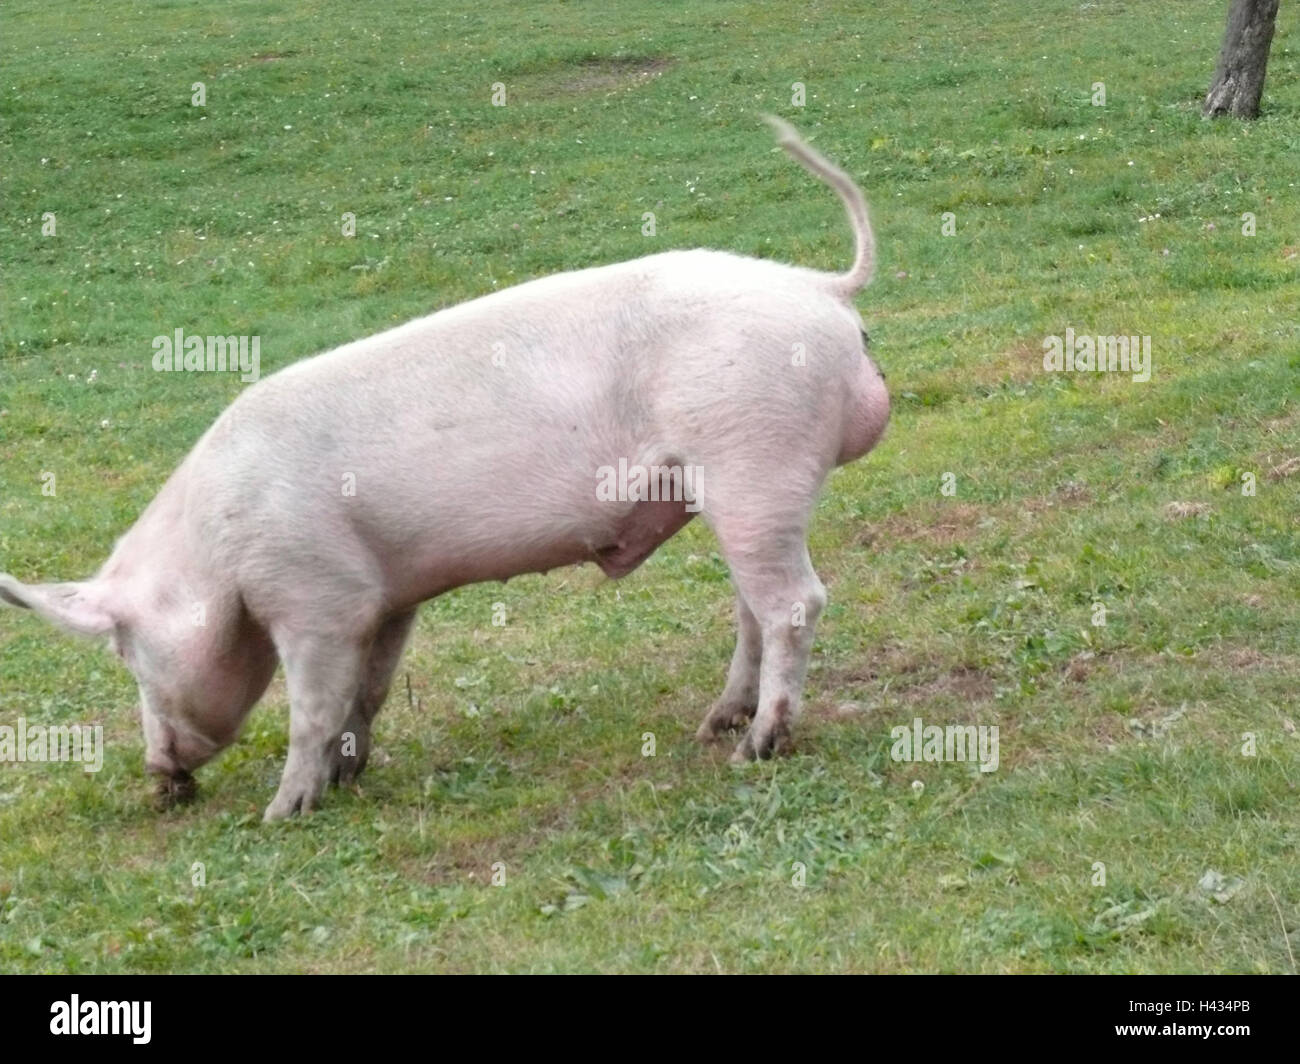 Pig, meadow, hillside, neutral-finishes, animal, mammal, usefulness-animal, house-pig, animal husbandry, cattle - Stock Image